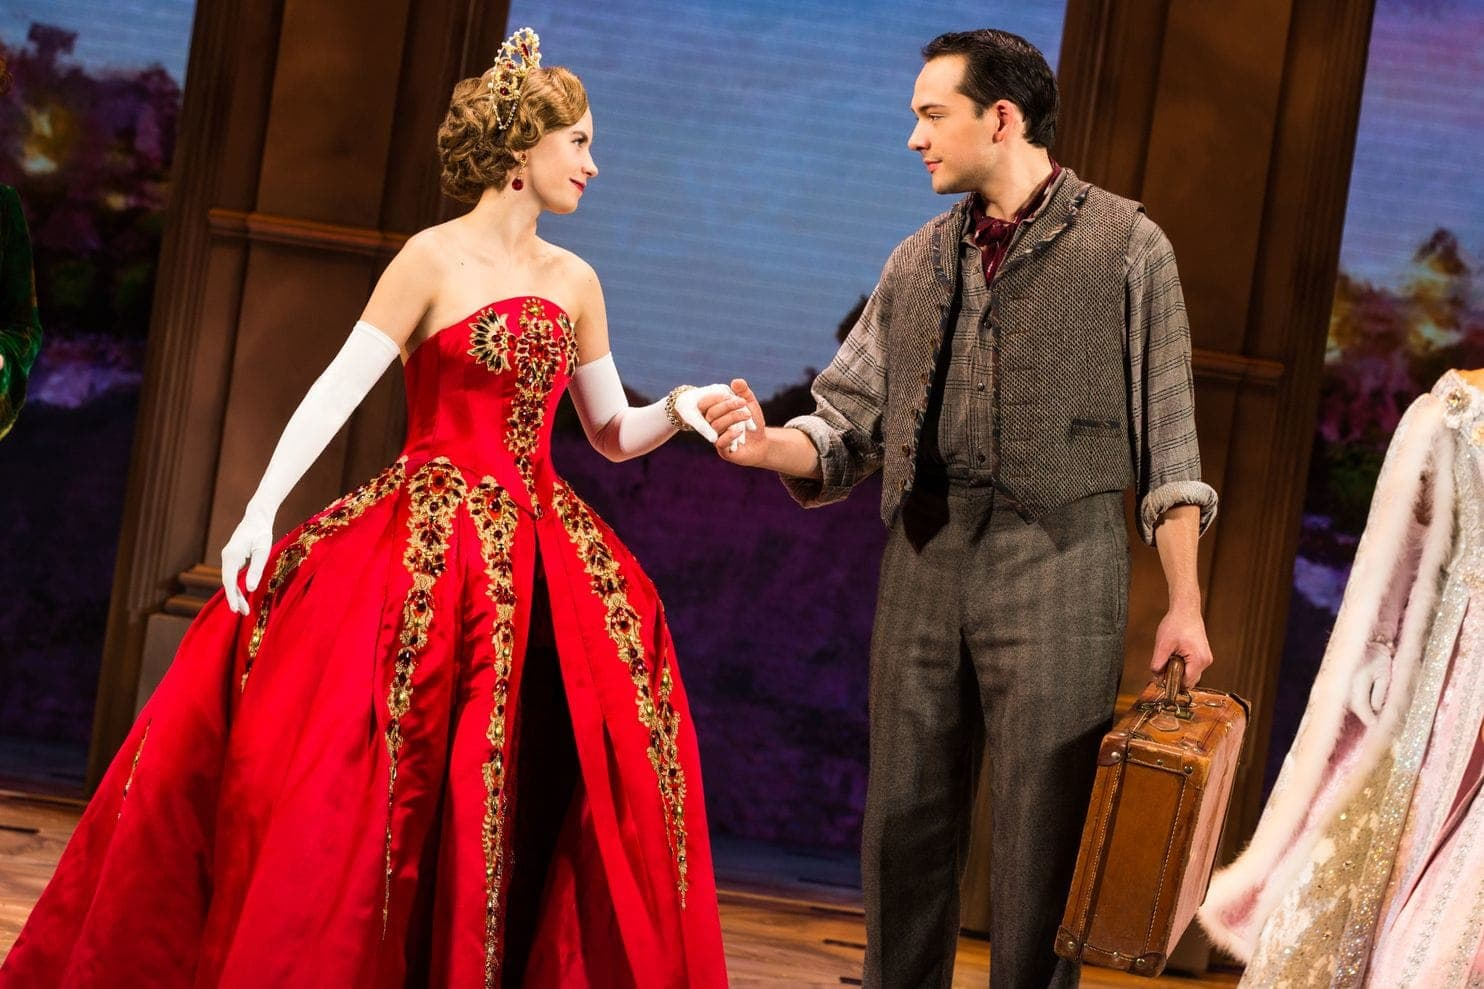 Lila Coogan (Anya) and Stephen Brower (Dmitry) in the national tour of 'Anastasia.' Photo by Evan Zimmerman.